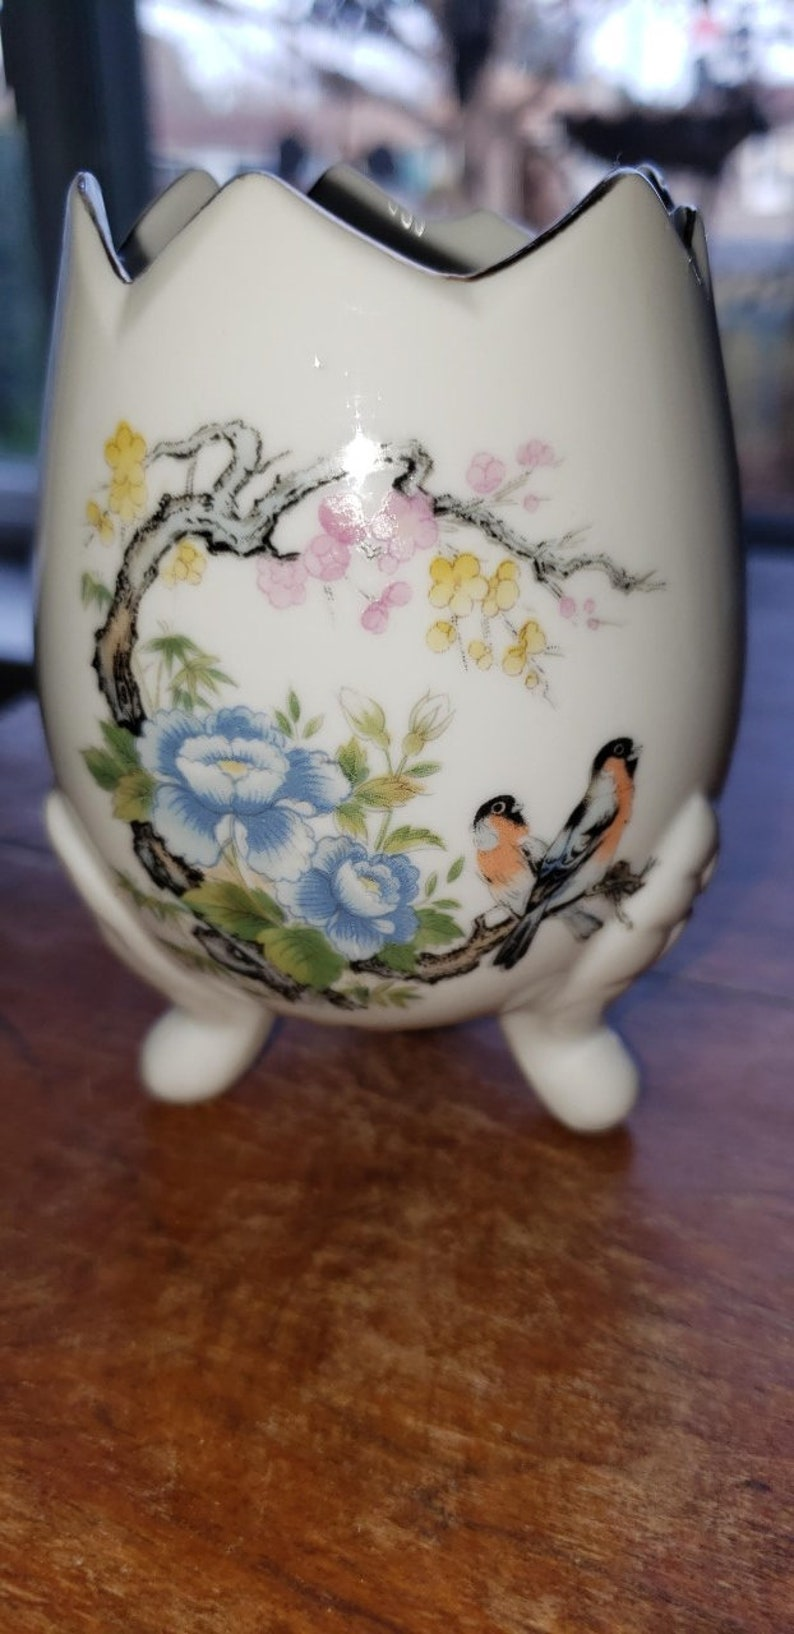 Vintage small cracked egg planter birds Japan excellent condition